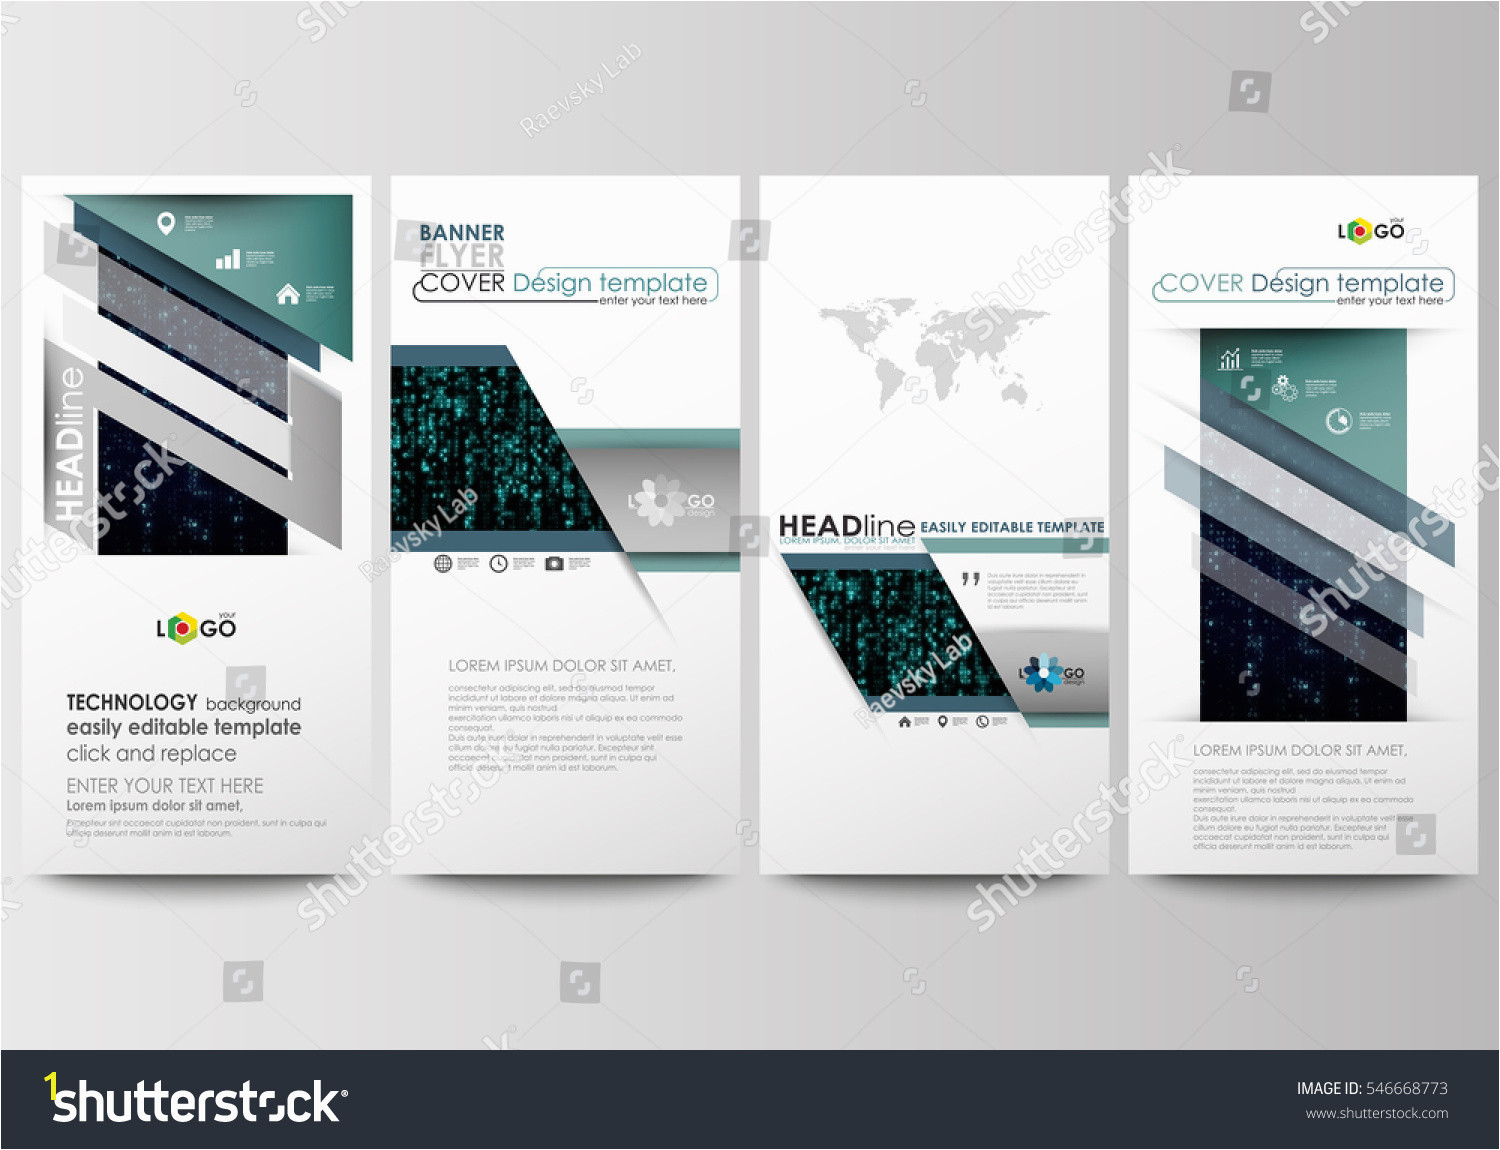 Background Color Codes for Web Pages Flyers Set Modern Banners Business Templates Cover Design